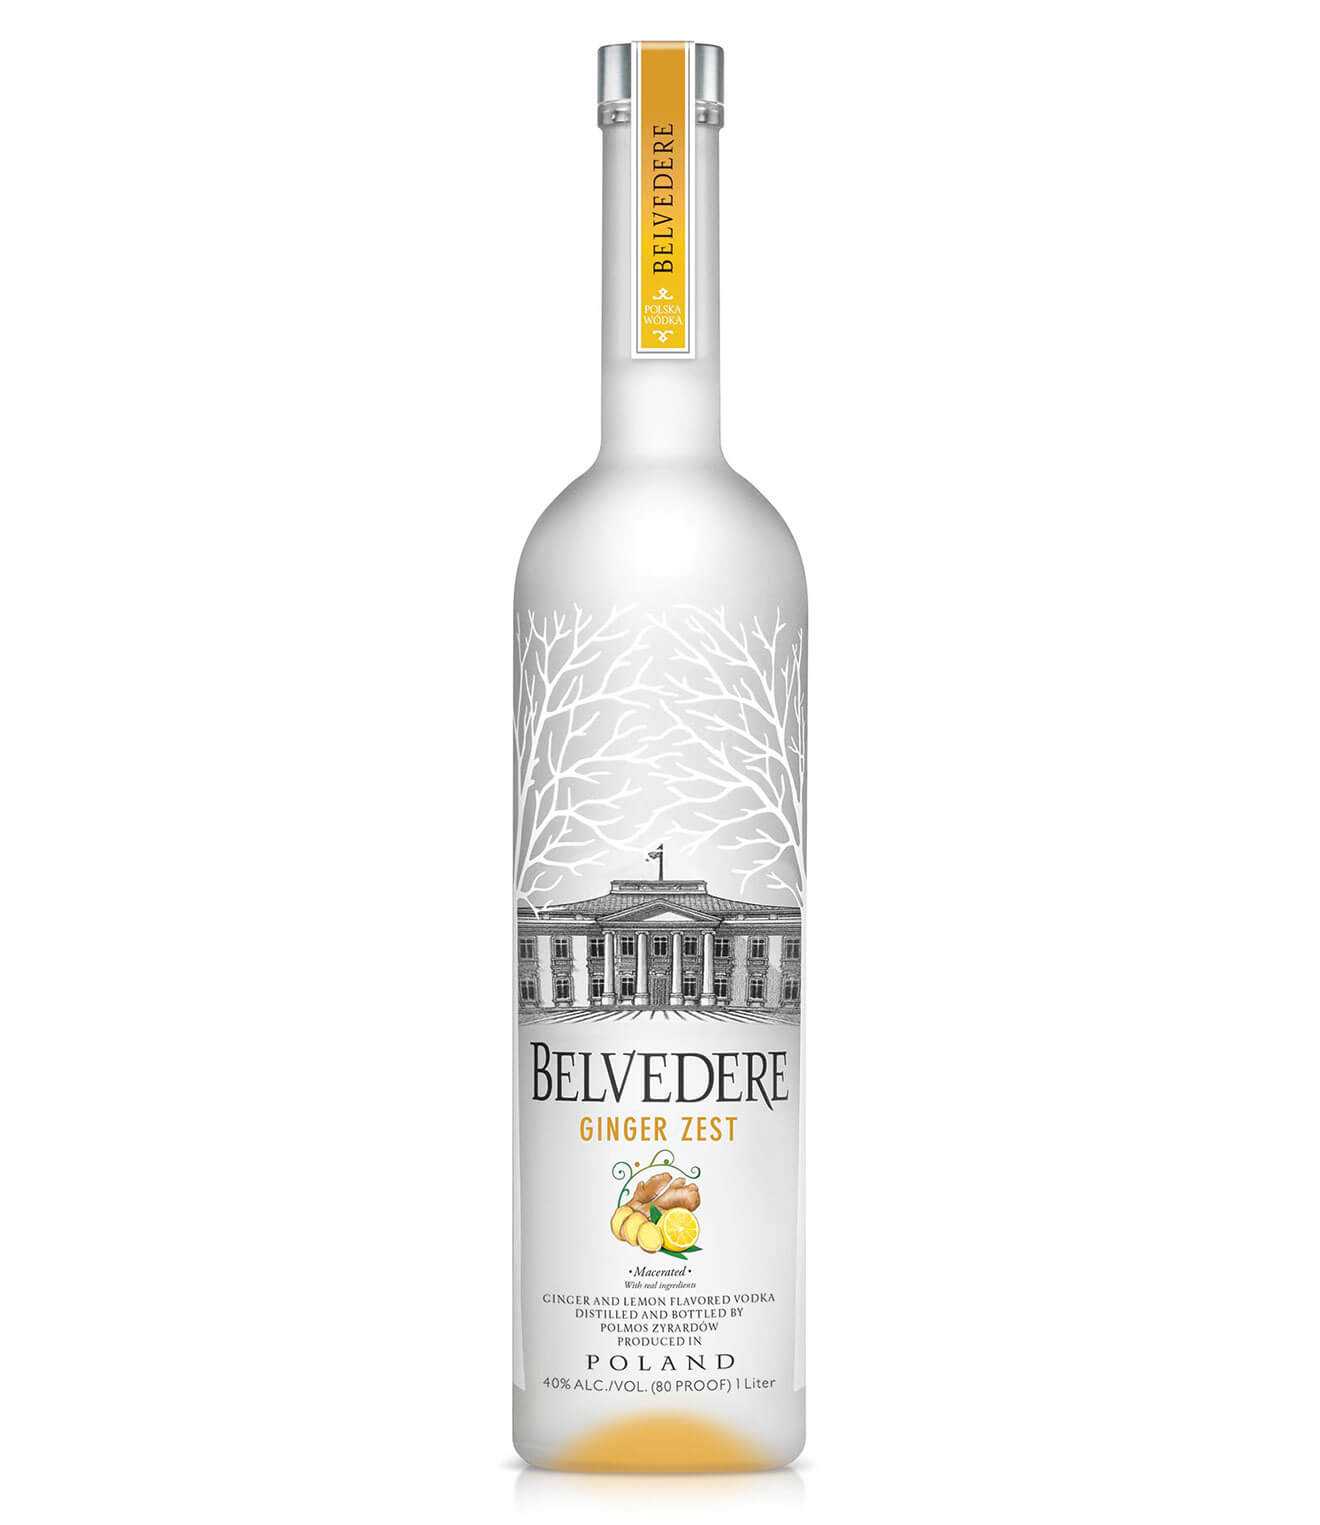 Belvedere Vodka Ginger Zest, bottle on white